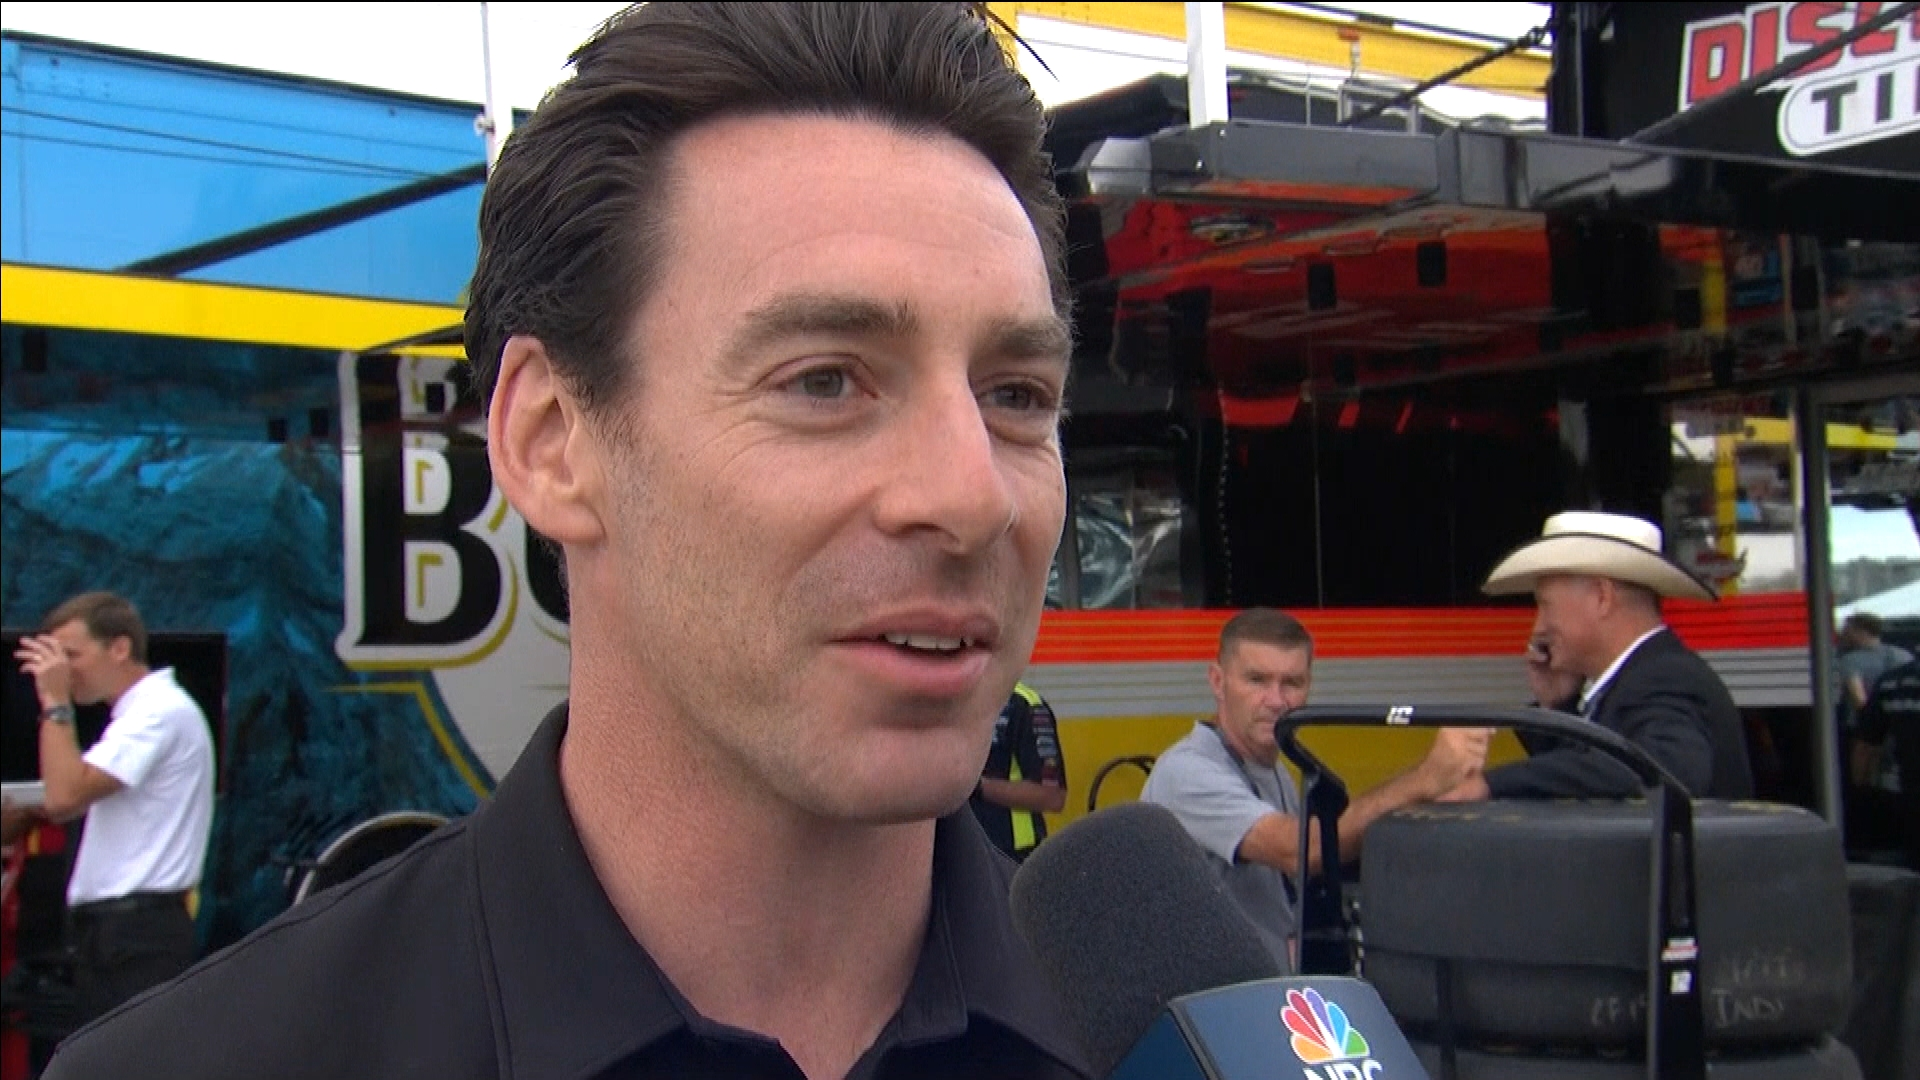 IndyCar's Simon Pagenaud takes in NASCAR Cup Series Brickyard 400 at